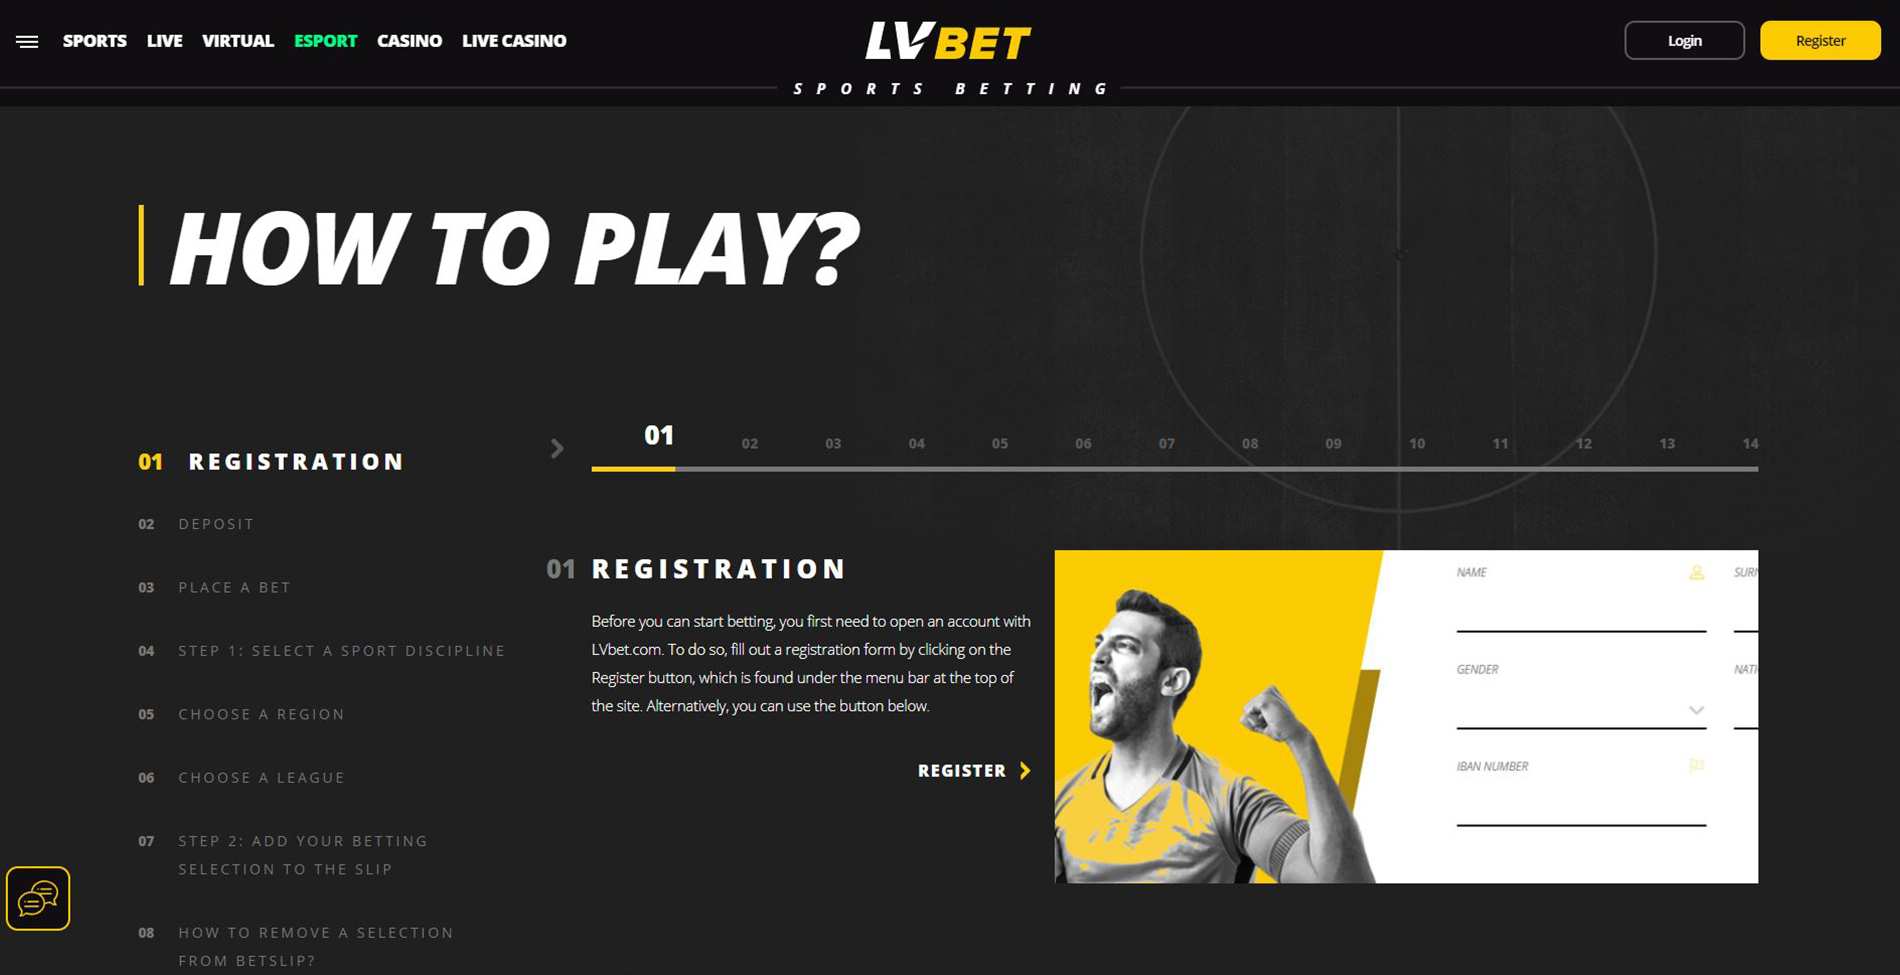 lvbet how to play